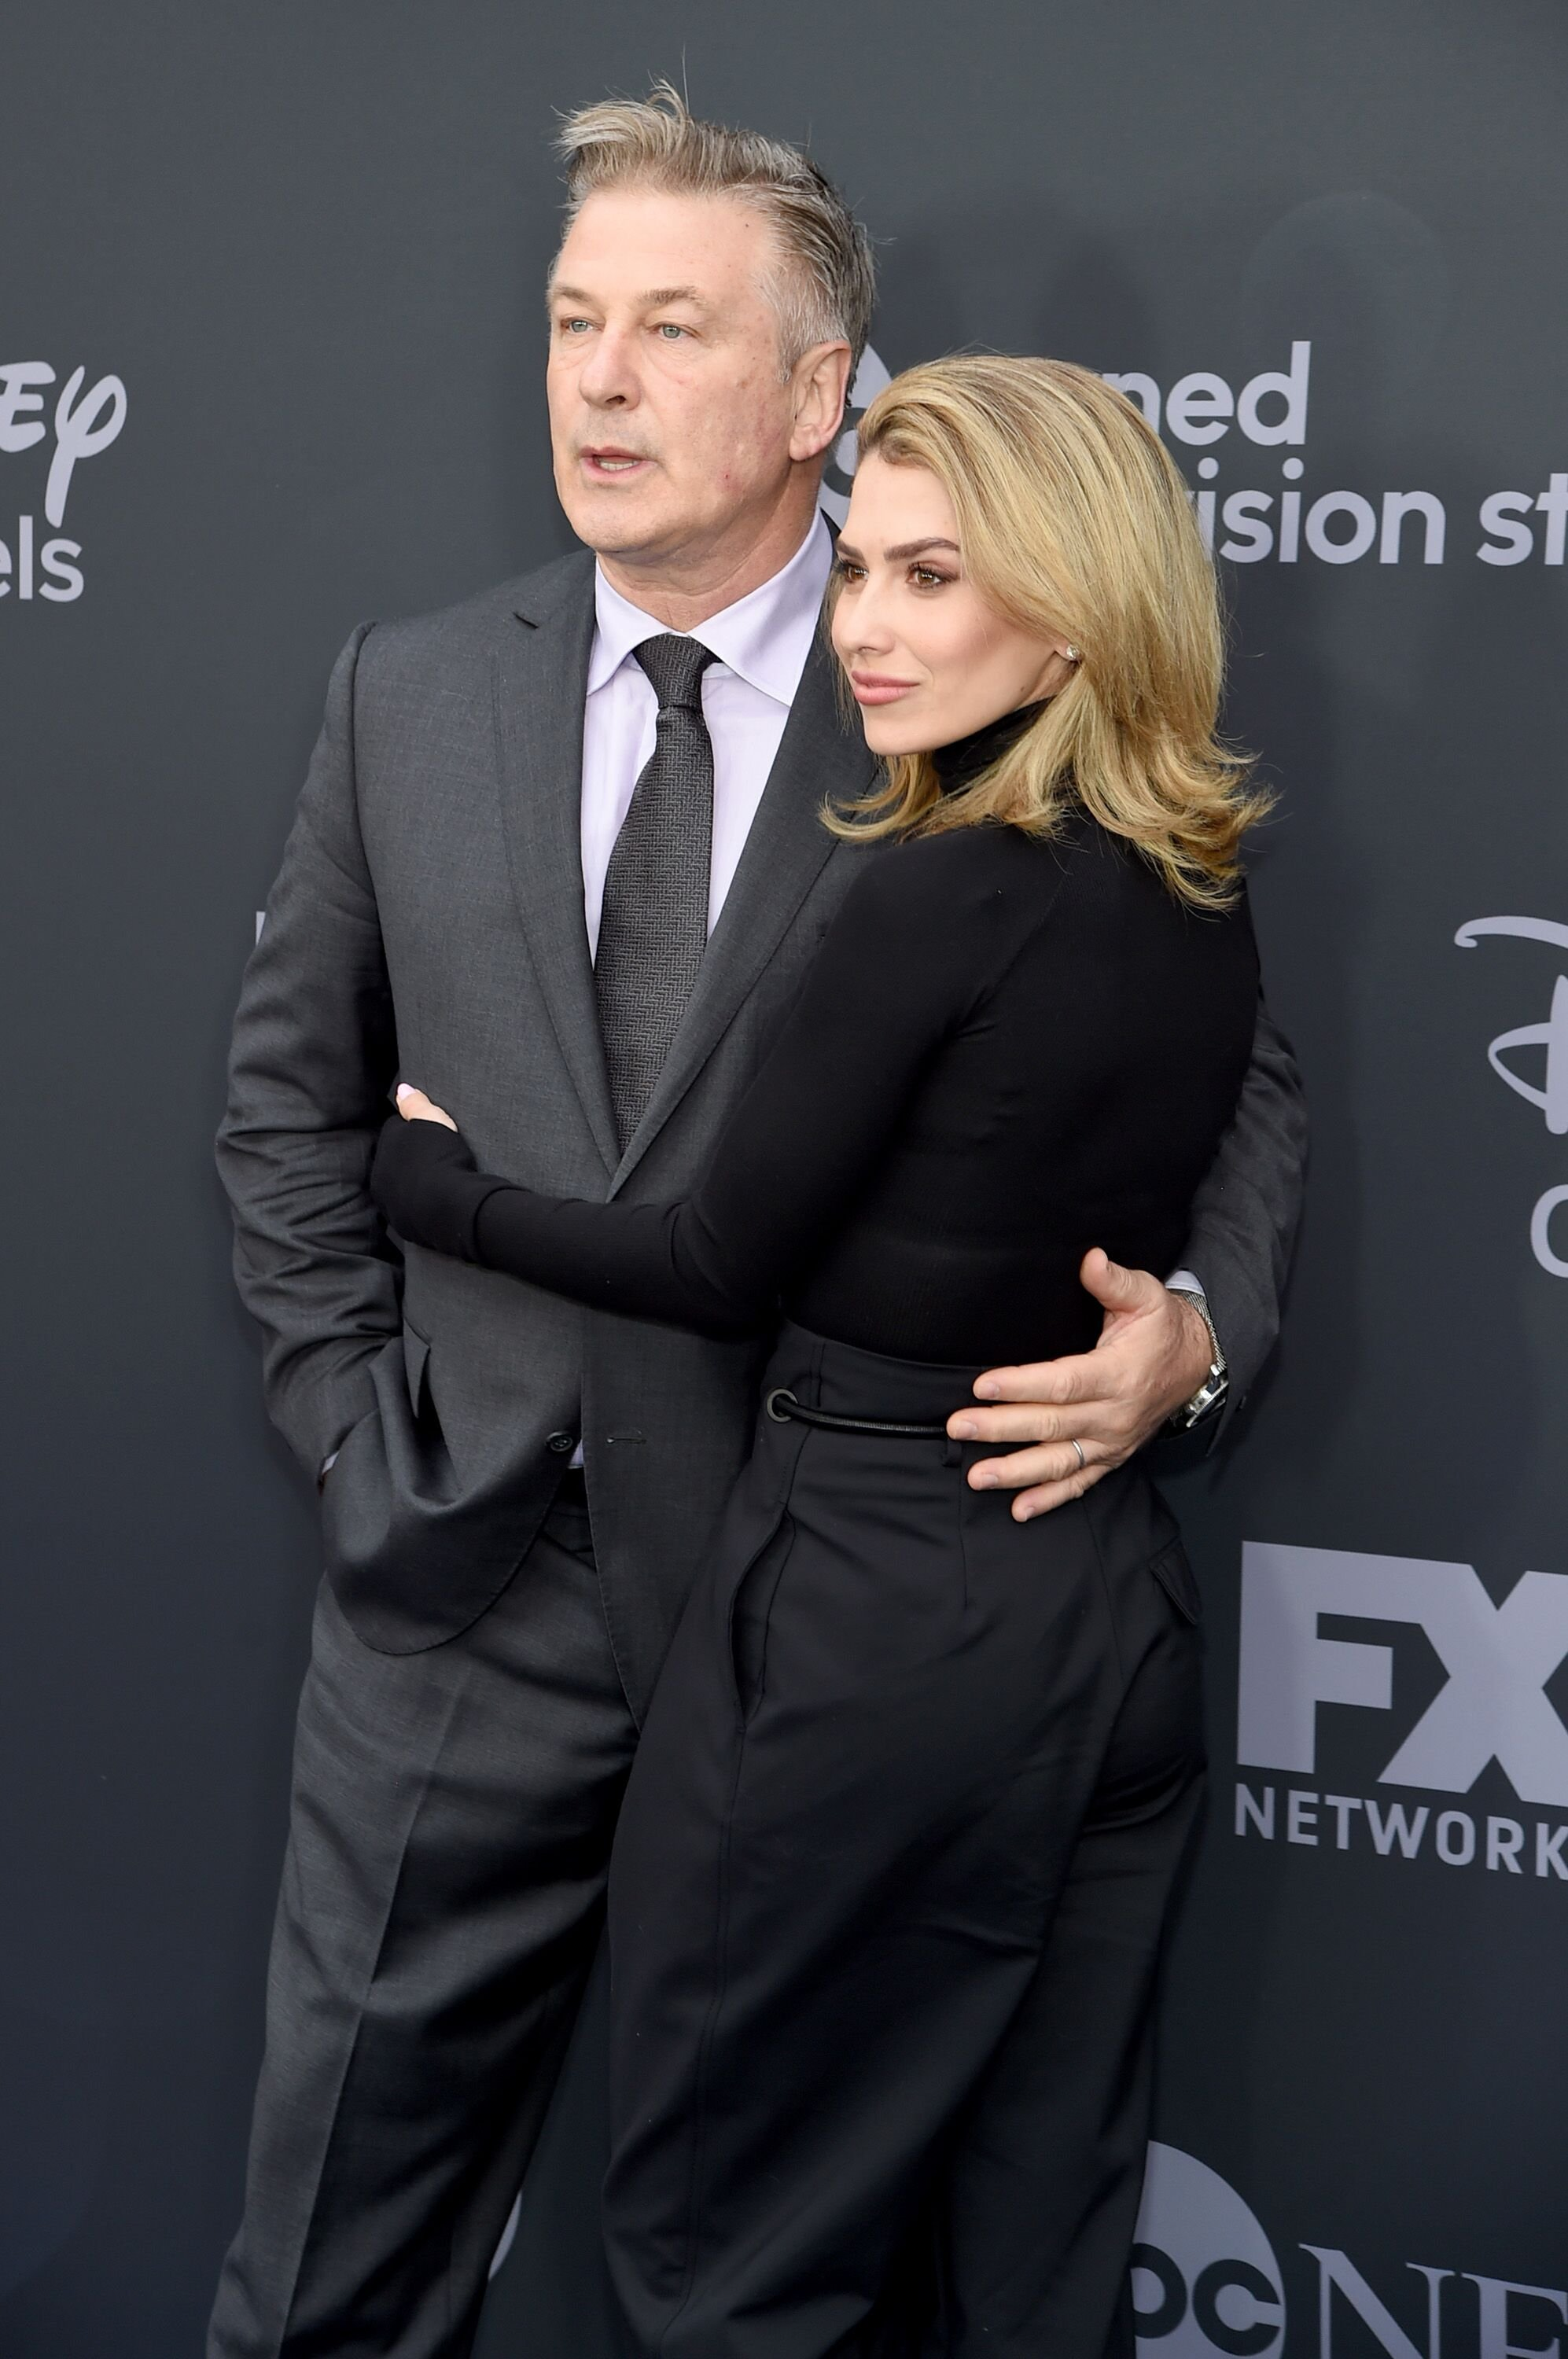 Alec and Hilaria Baldwin at the ABC Walt Disney Television Upfront on May 14, 2019, in New York City | Photo: Jamie McCarthy/Getty Images